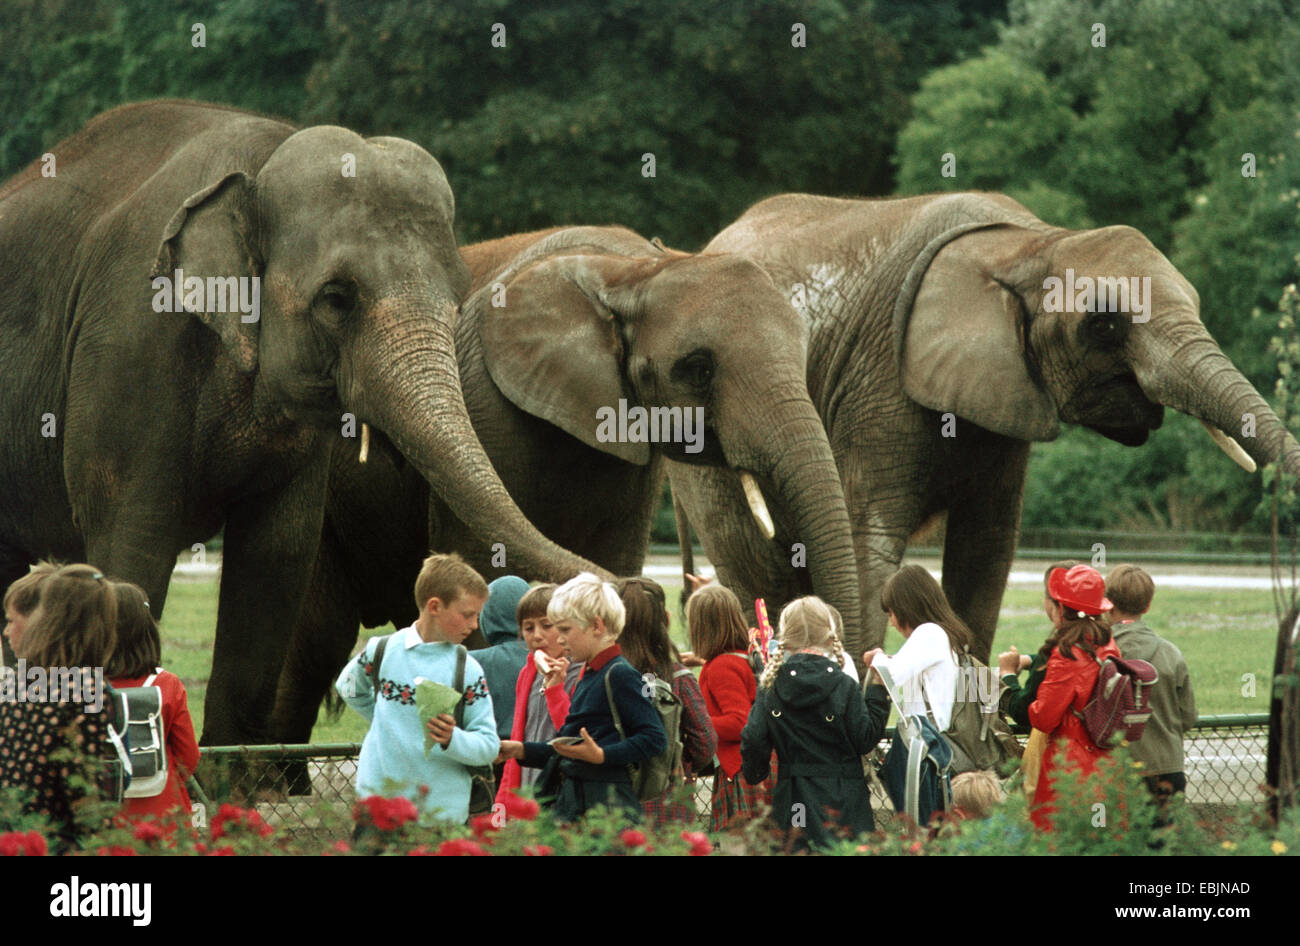 Asiatic elephant, Asian elephant (Elephas maximus), school class at the zoo in front of an open-air enclosure with - Stock Image